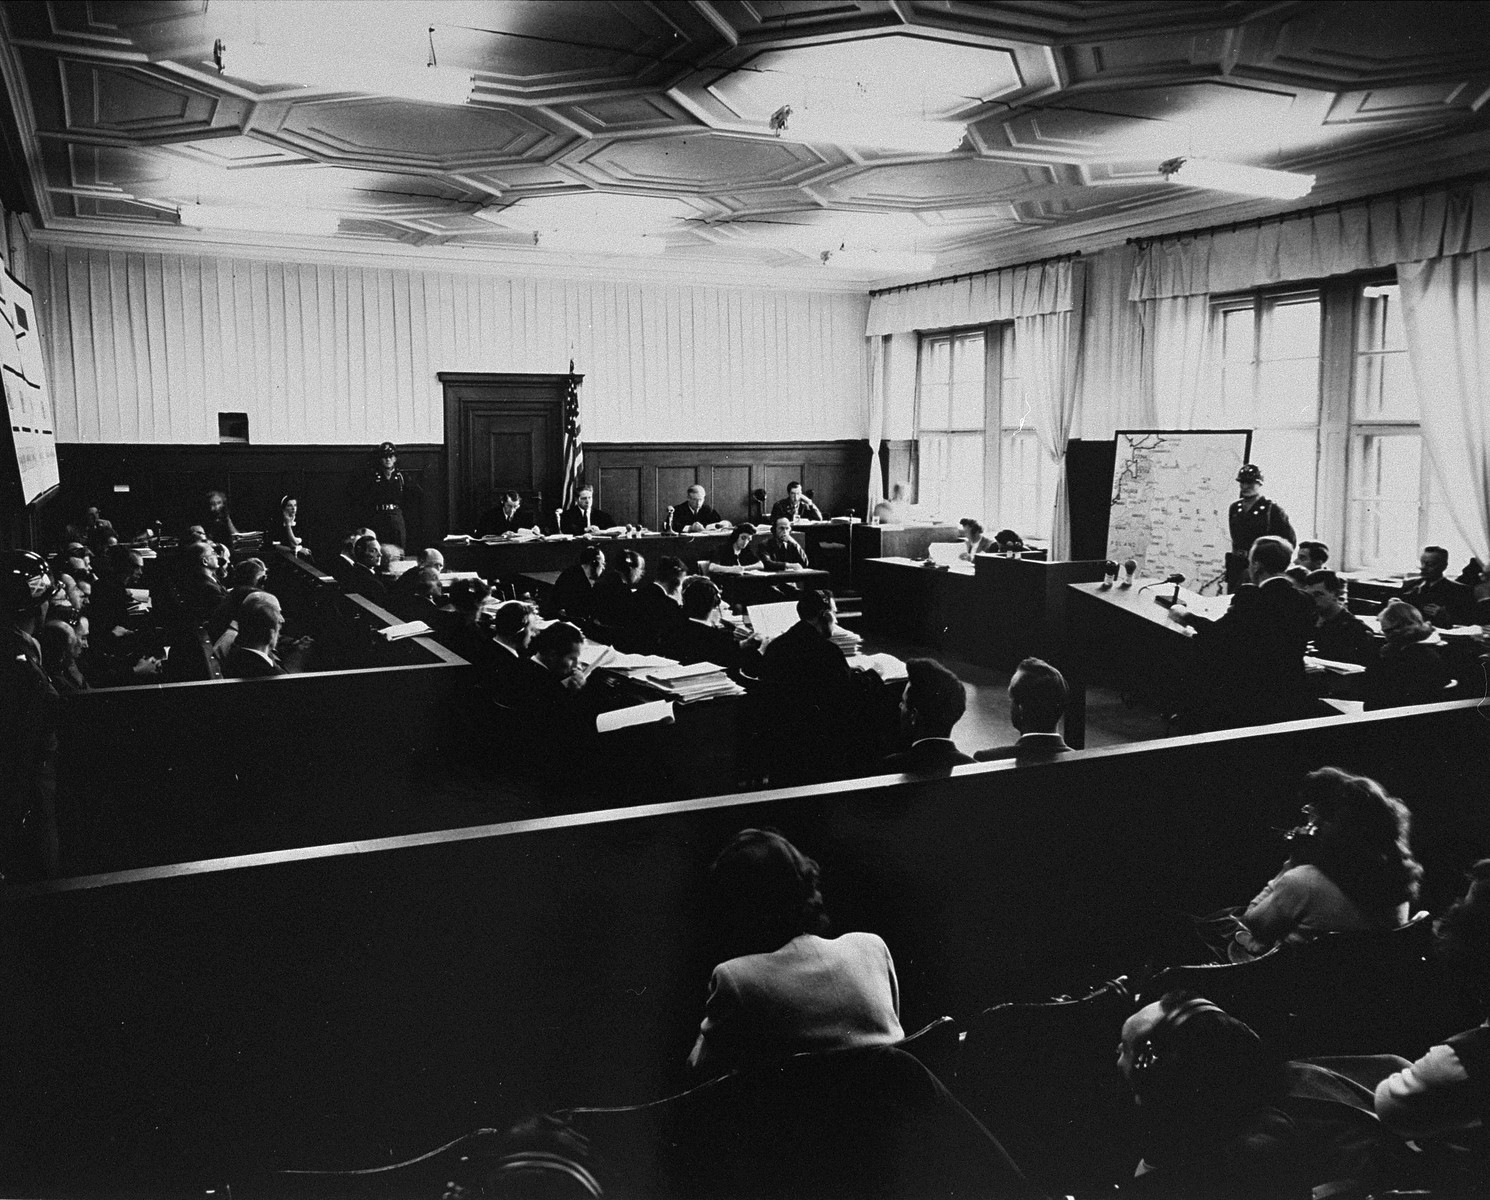 View of the courtroom in the Palace of Justice as chief prosecutor Benjamin Ferencz opens the Einsatzgruppen Trial.